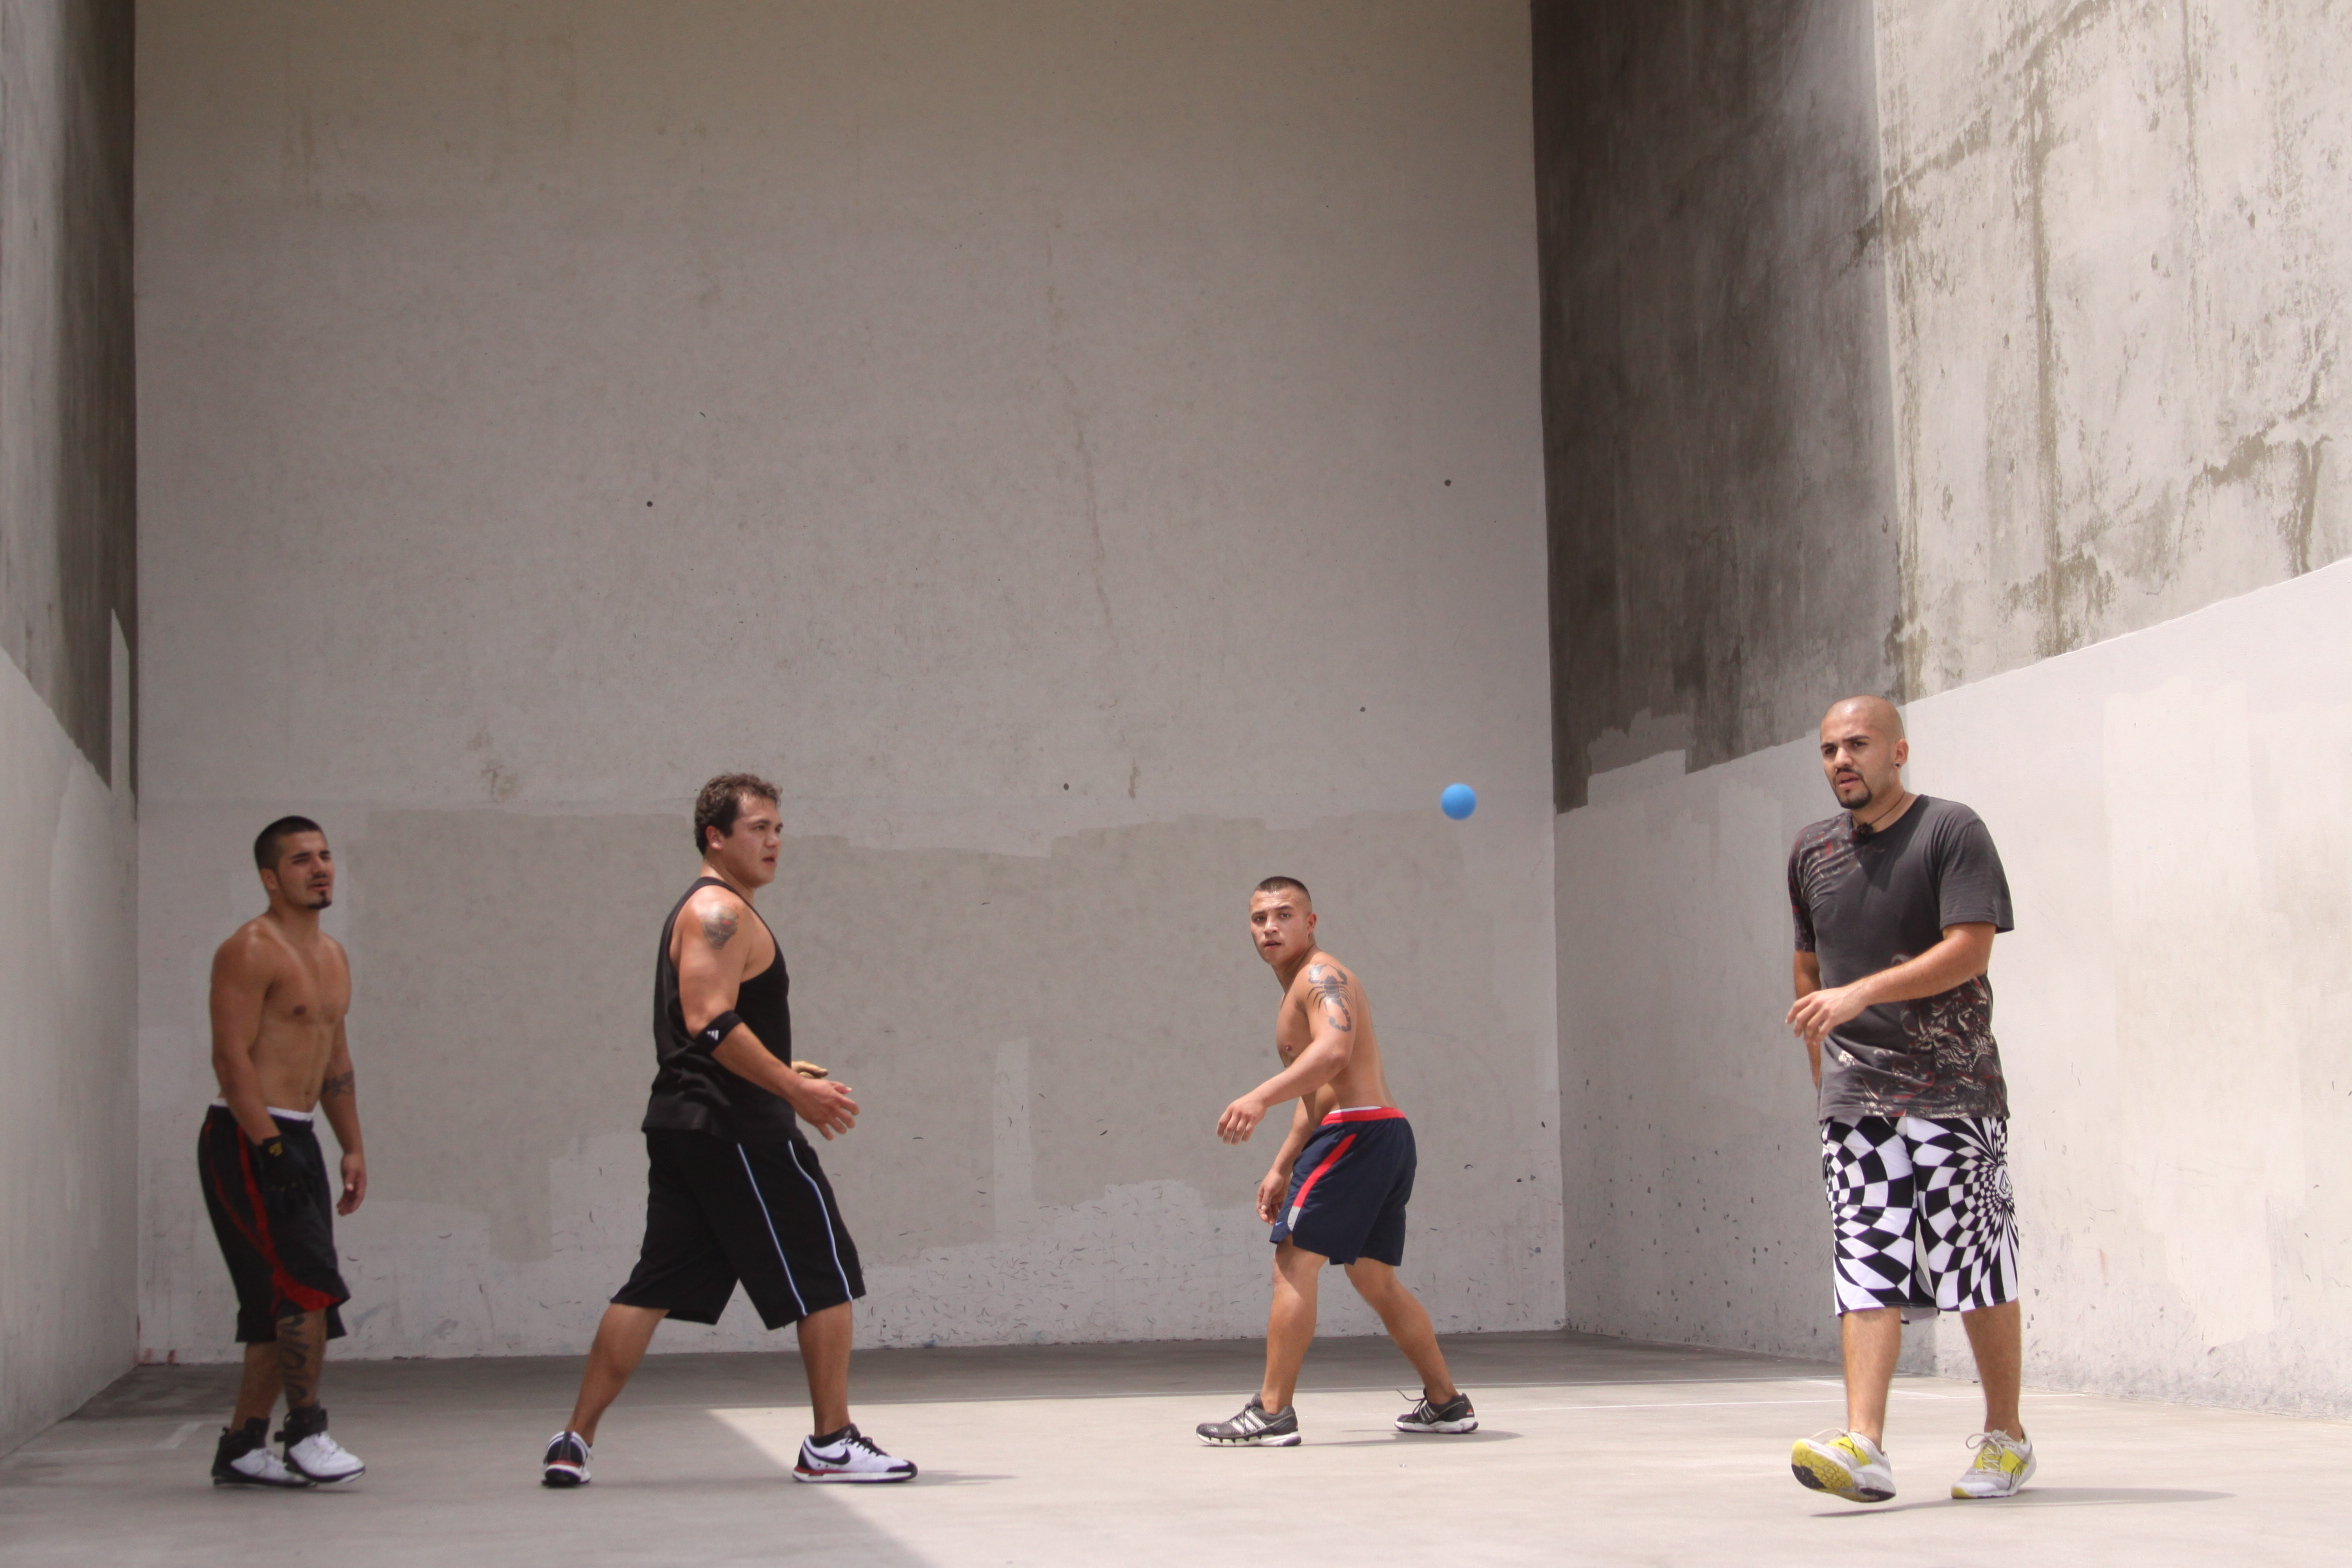 Game of the Week Wall Ball